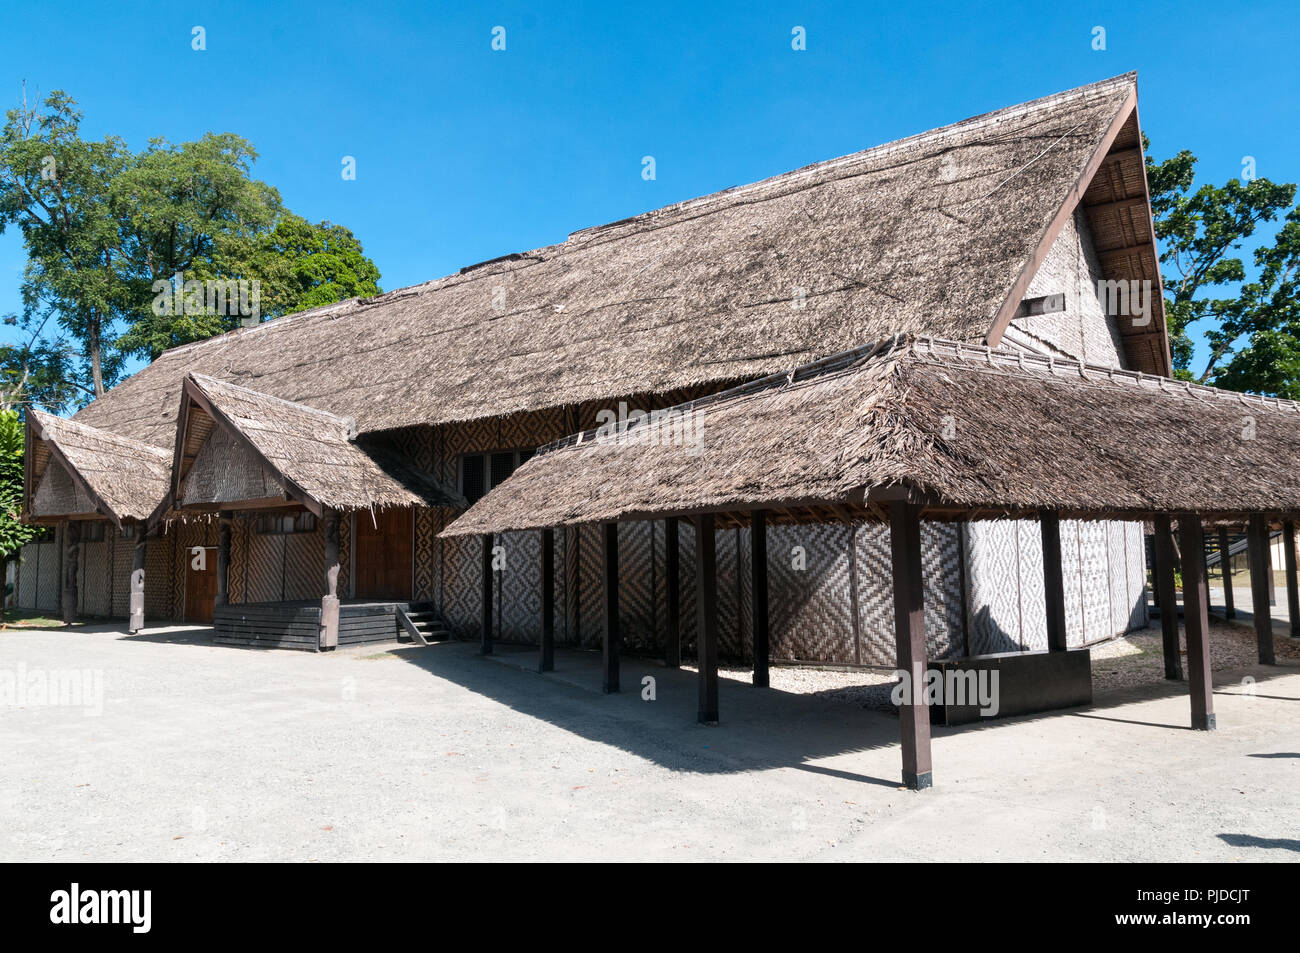 Large traditional building with thatched roof and woven walls, Honiara, Solomon Islands - Stock Image